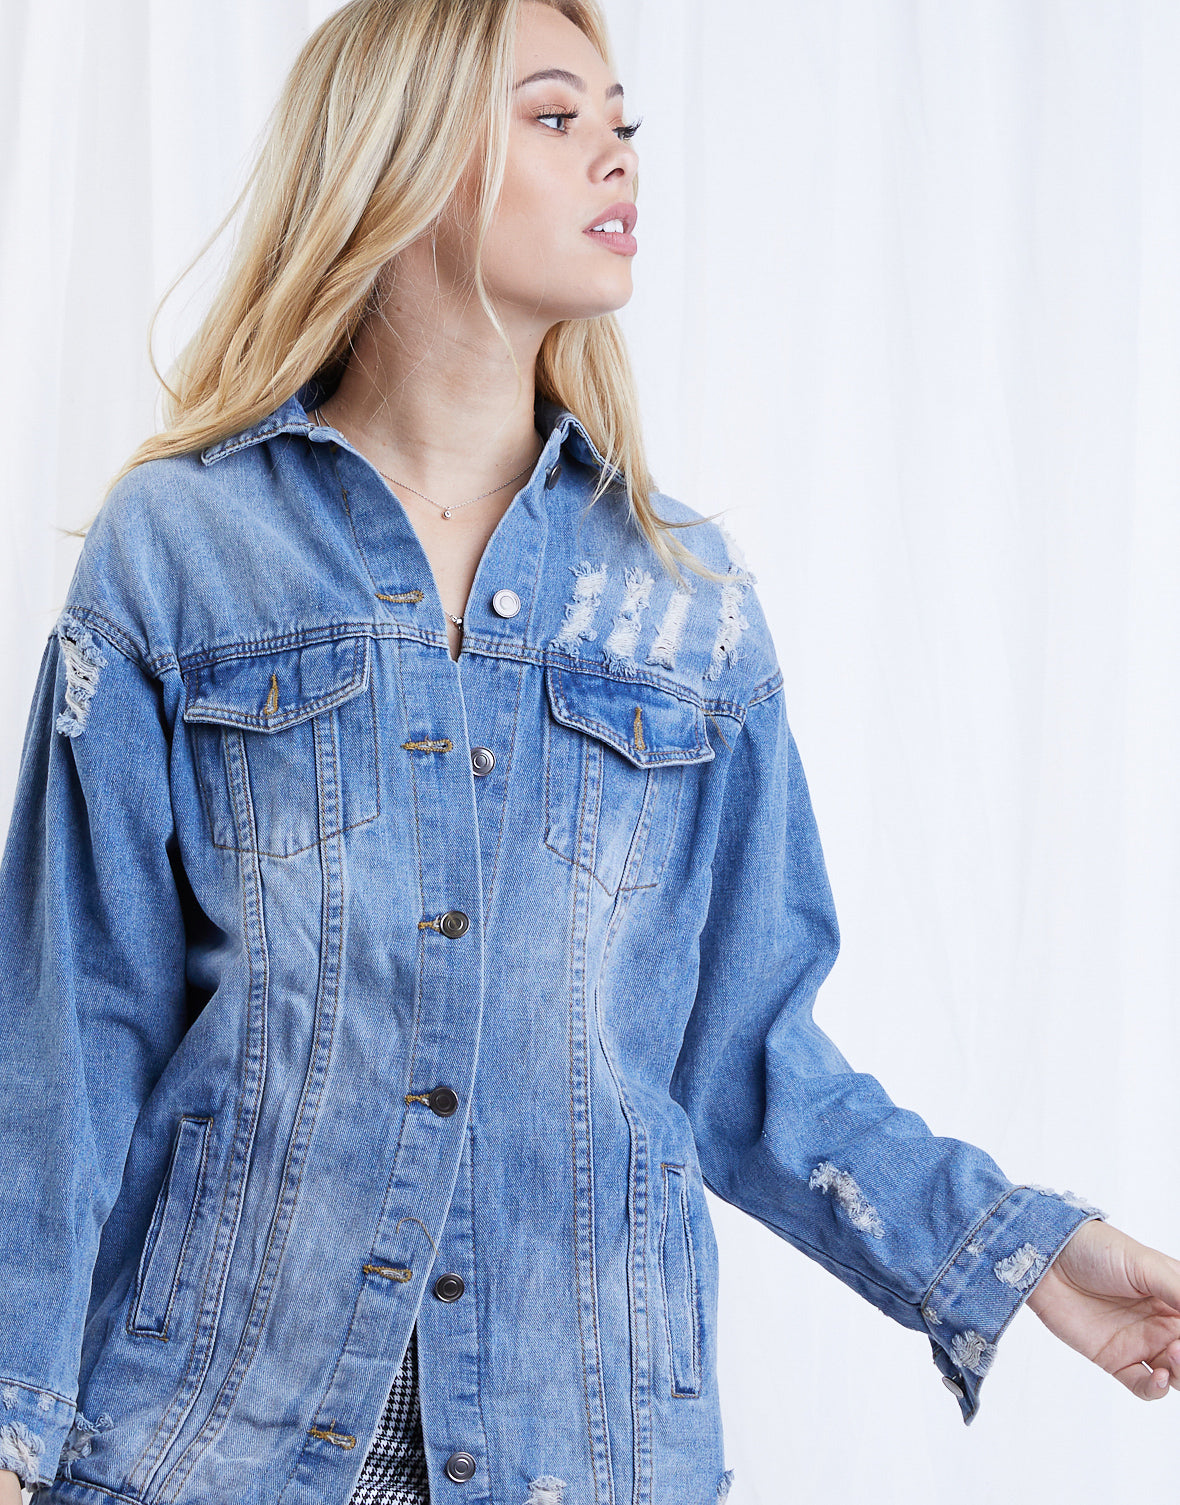 Let's Hang Oversized Denim Jacket